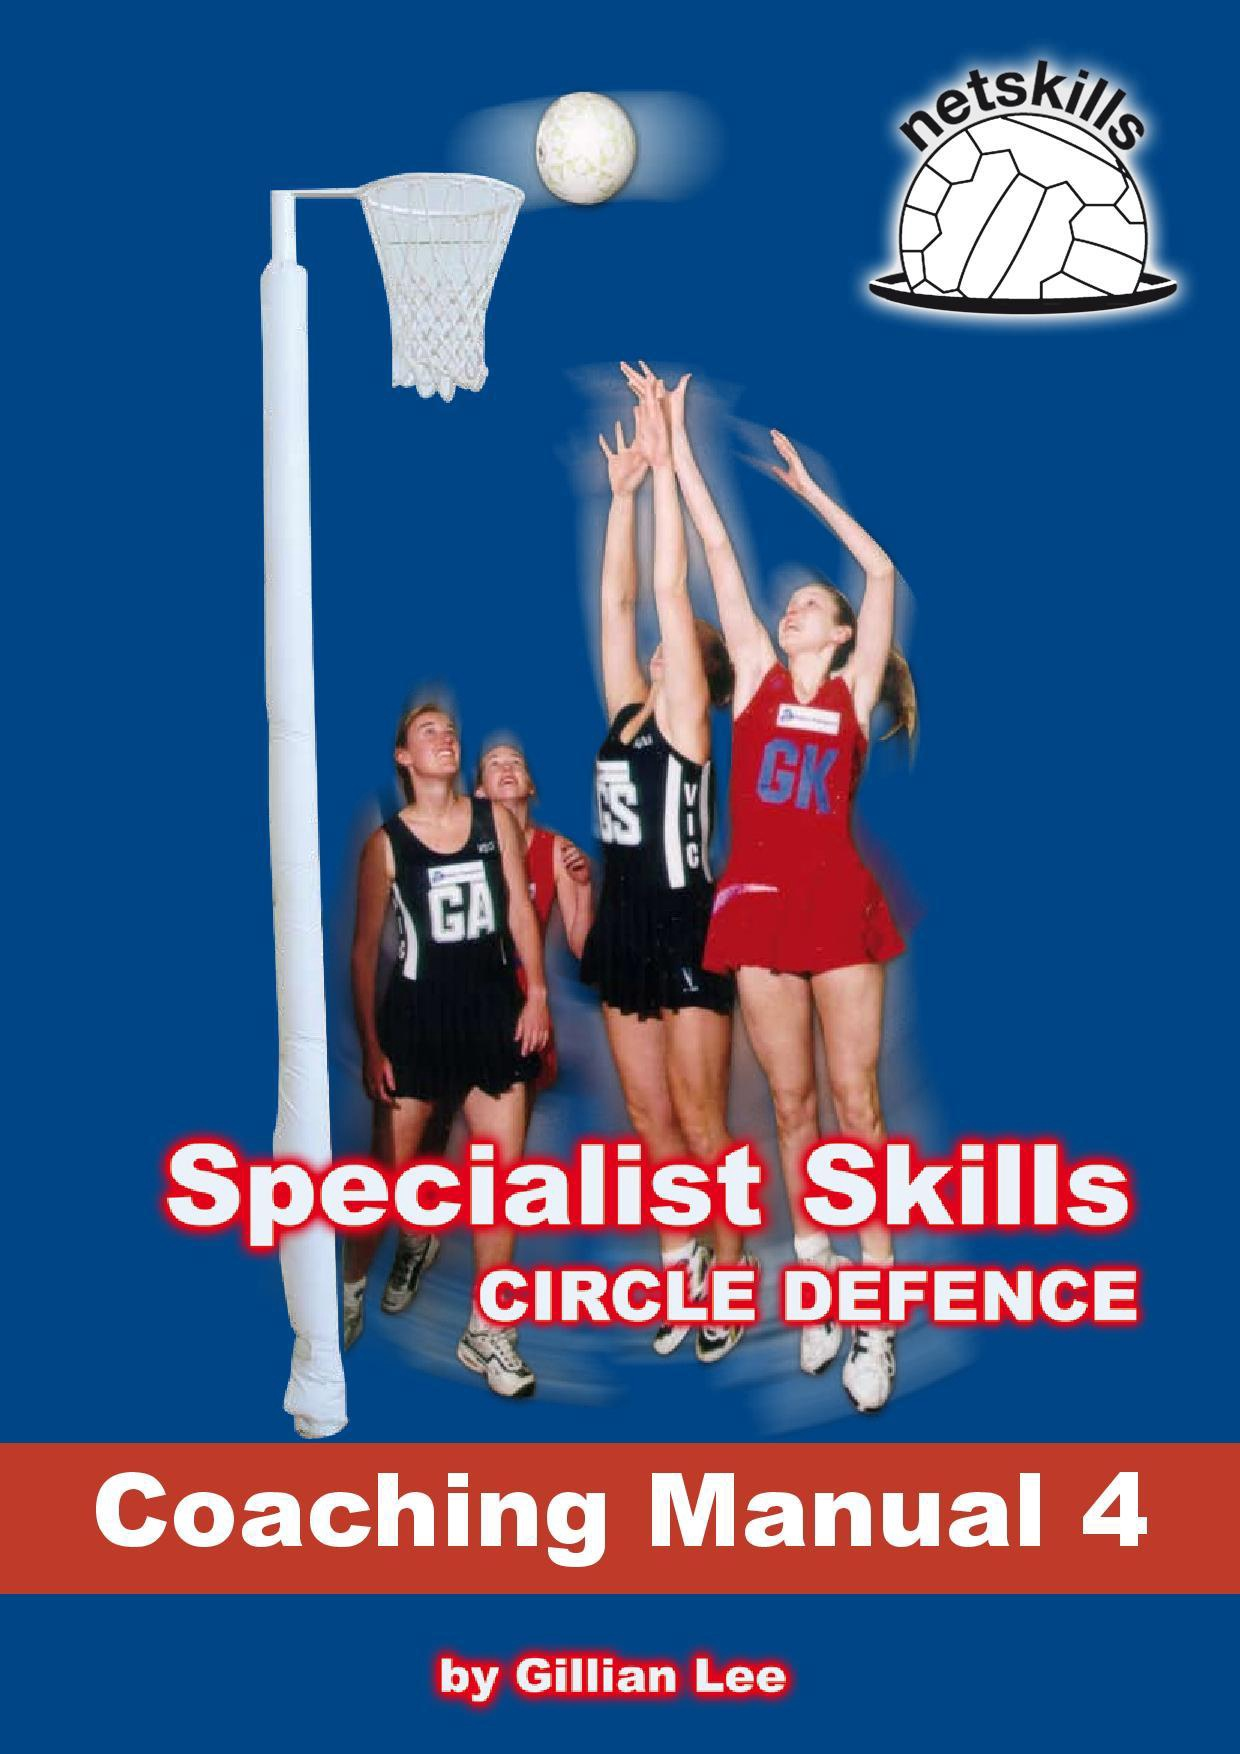 Netskills Coaching Manual 4 - Specialist Skills Circle Defence